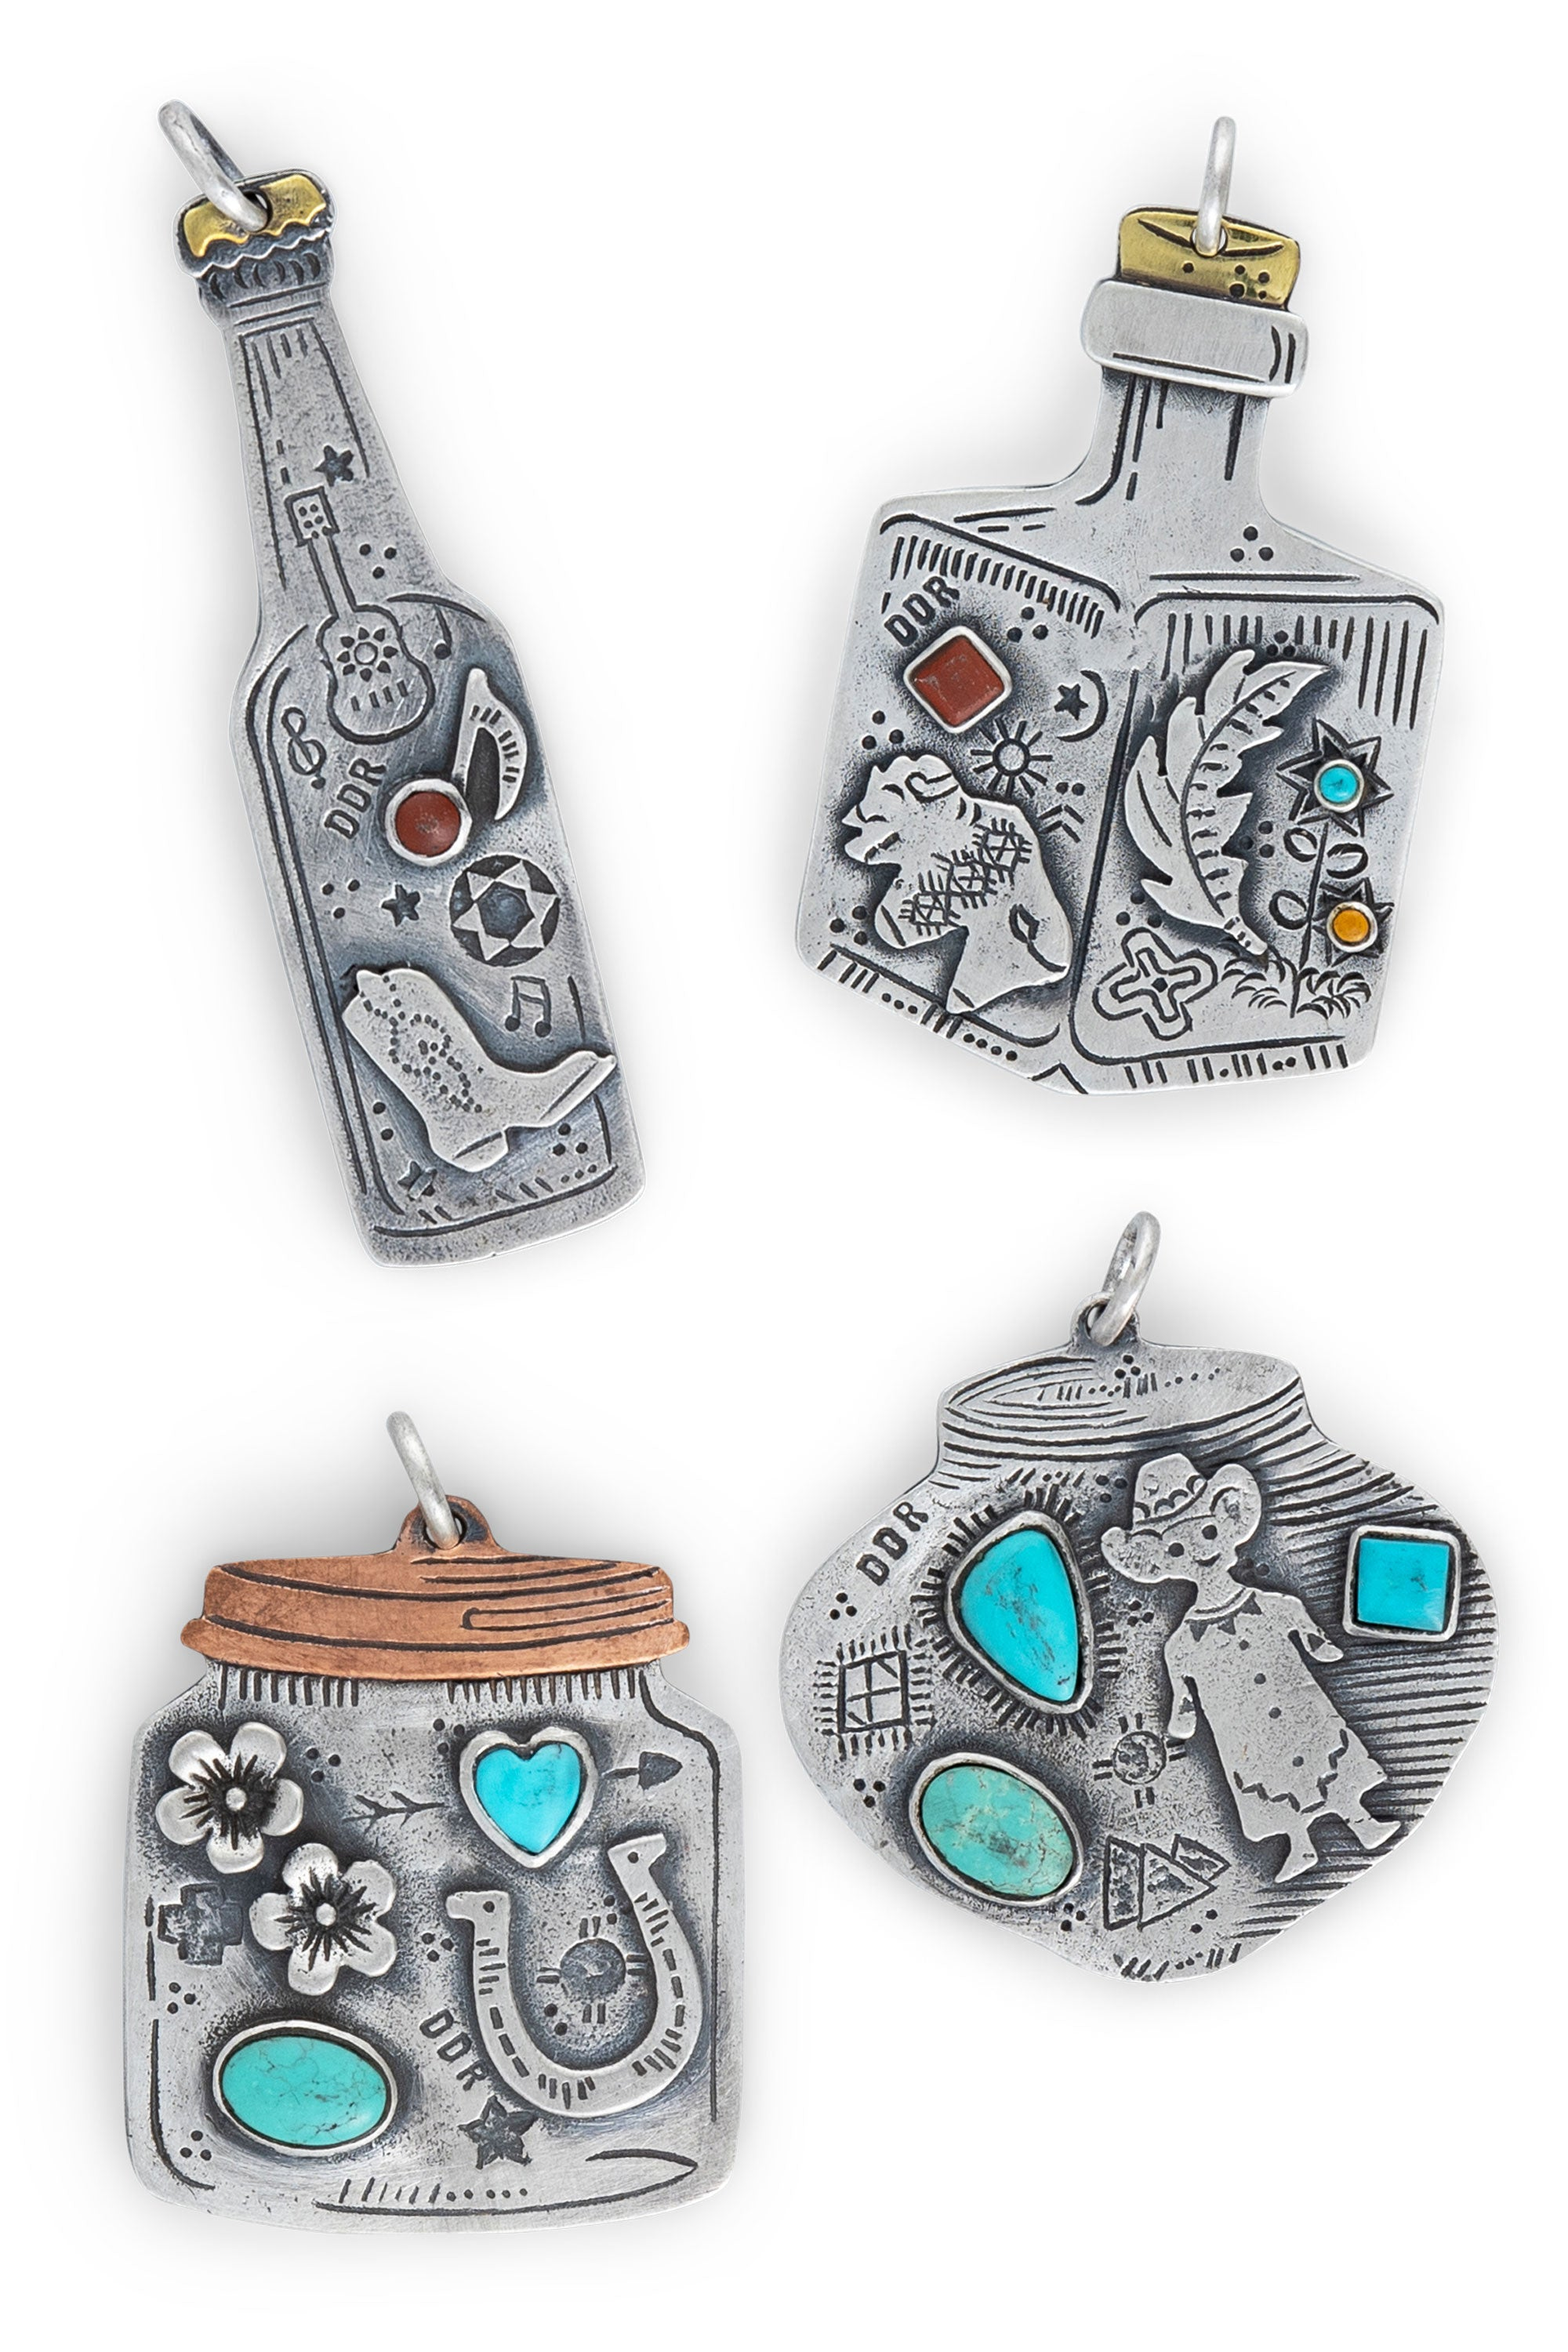 Charm, I Go Back Charm Collection, Set of 4